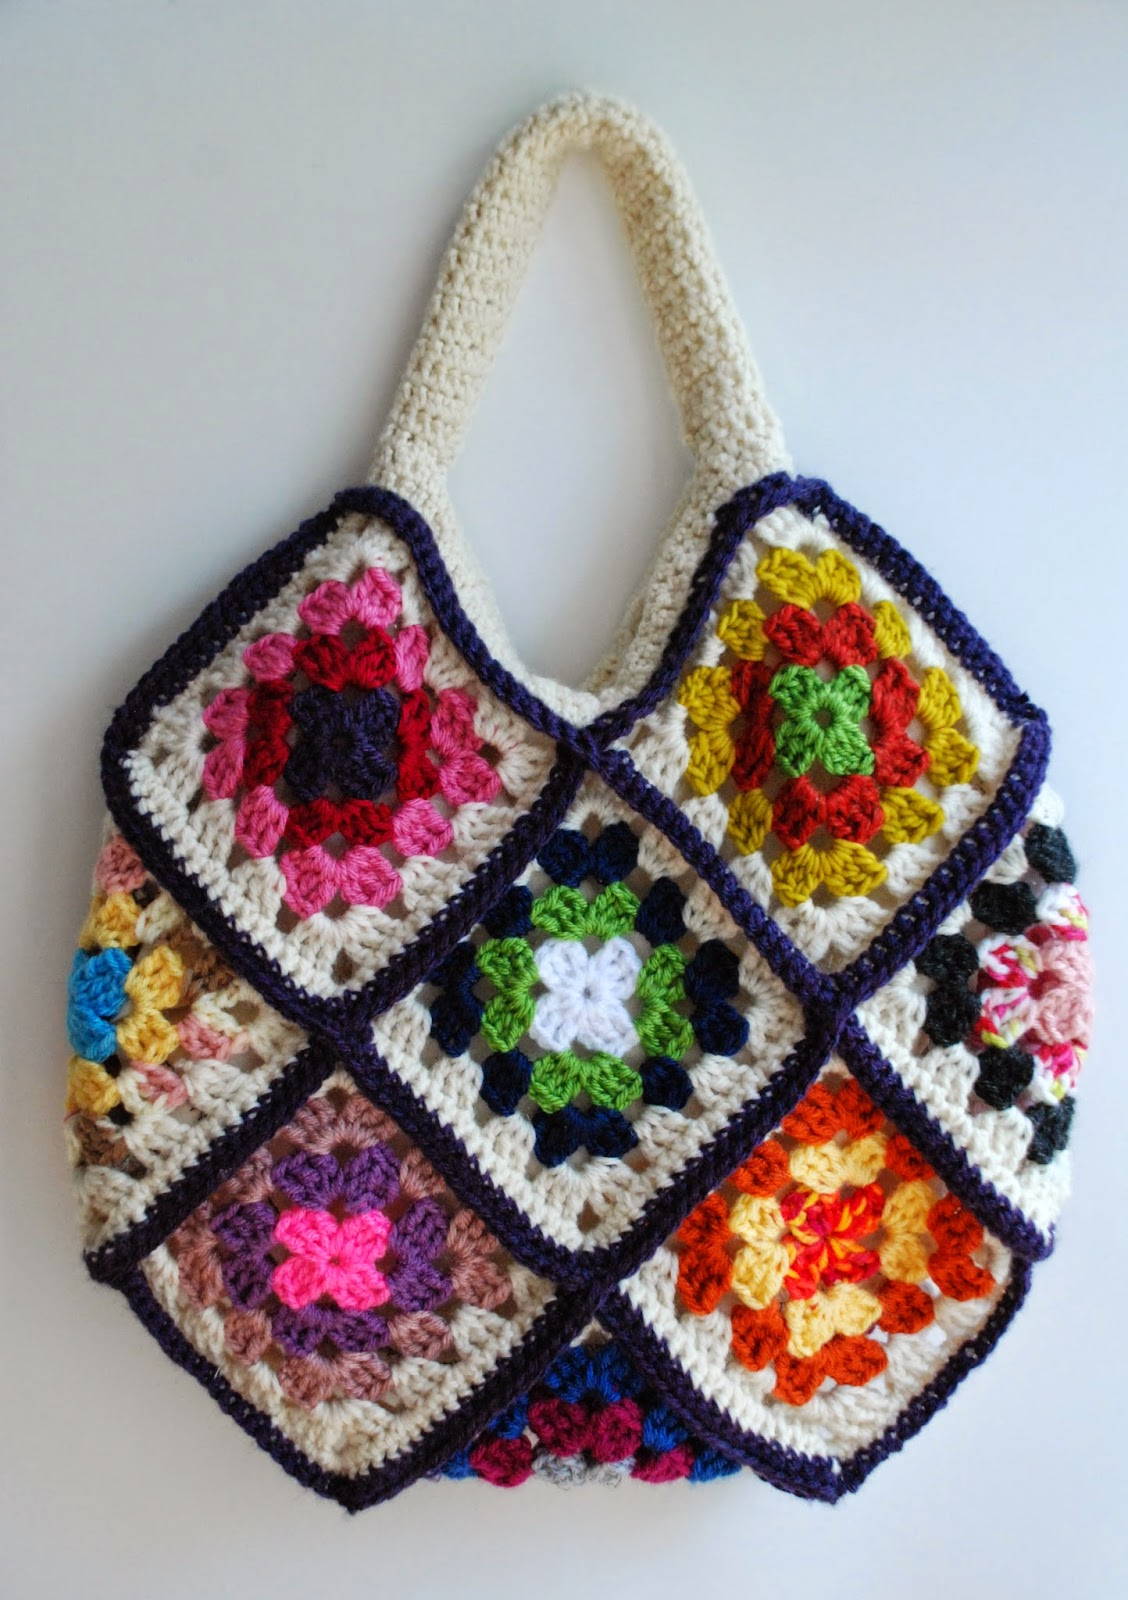 Kristis Twist: New crochet bags added to my Etsy shop